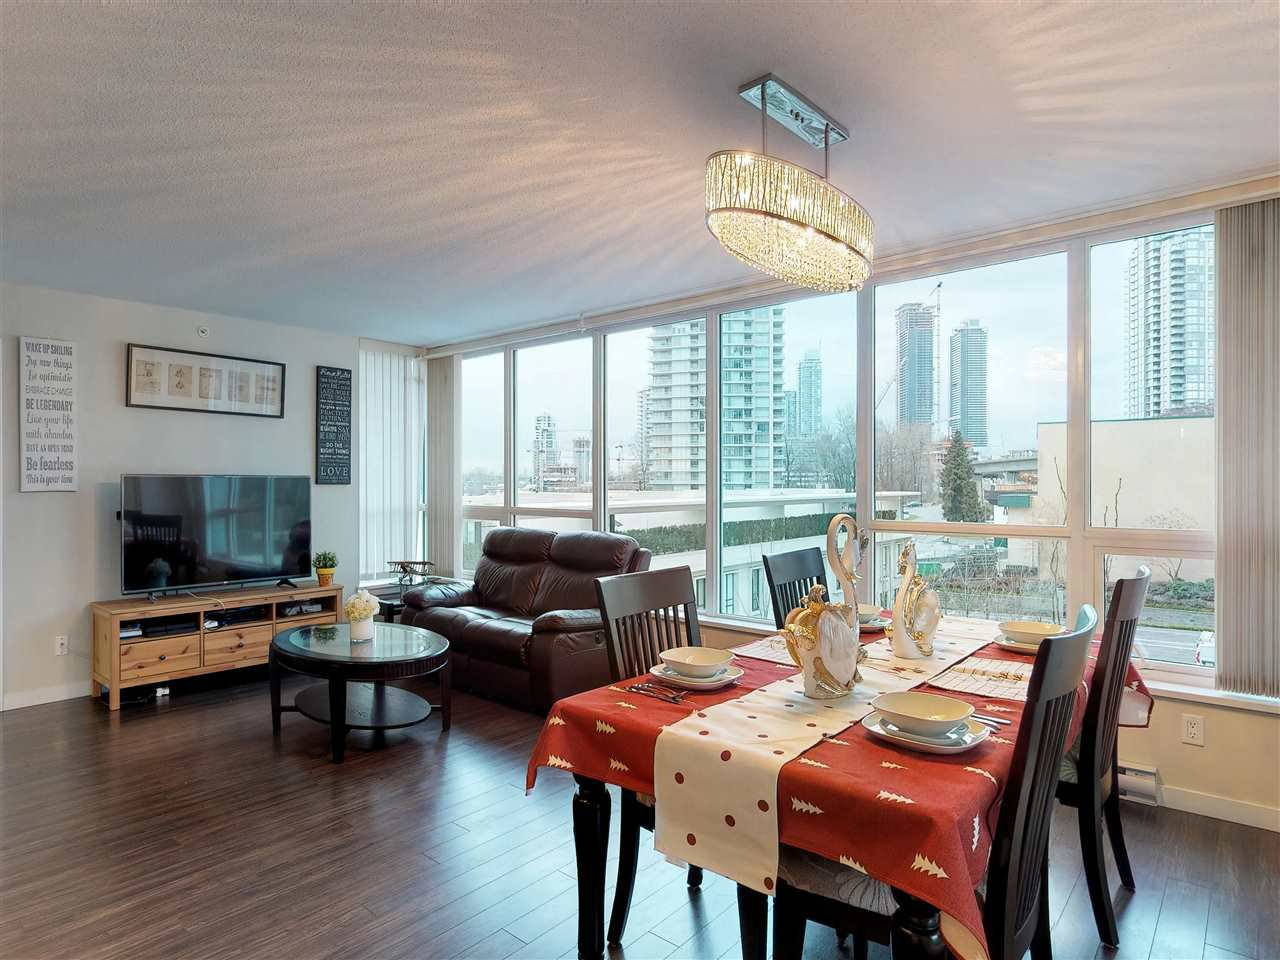 Photo 10: Photos: 405 2232 DOUGLAS ROAD in Burnaby: Brentwood Park Condo for sale (Burnaby North)  : MLS®# R2347040